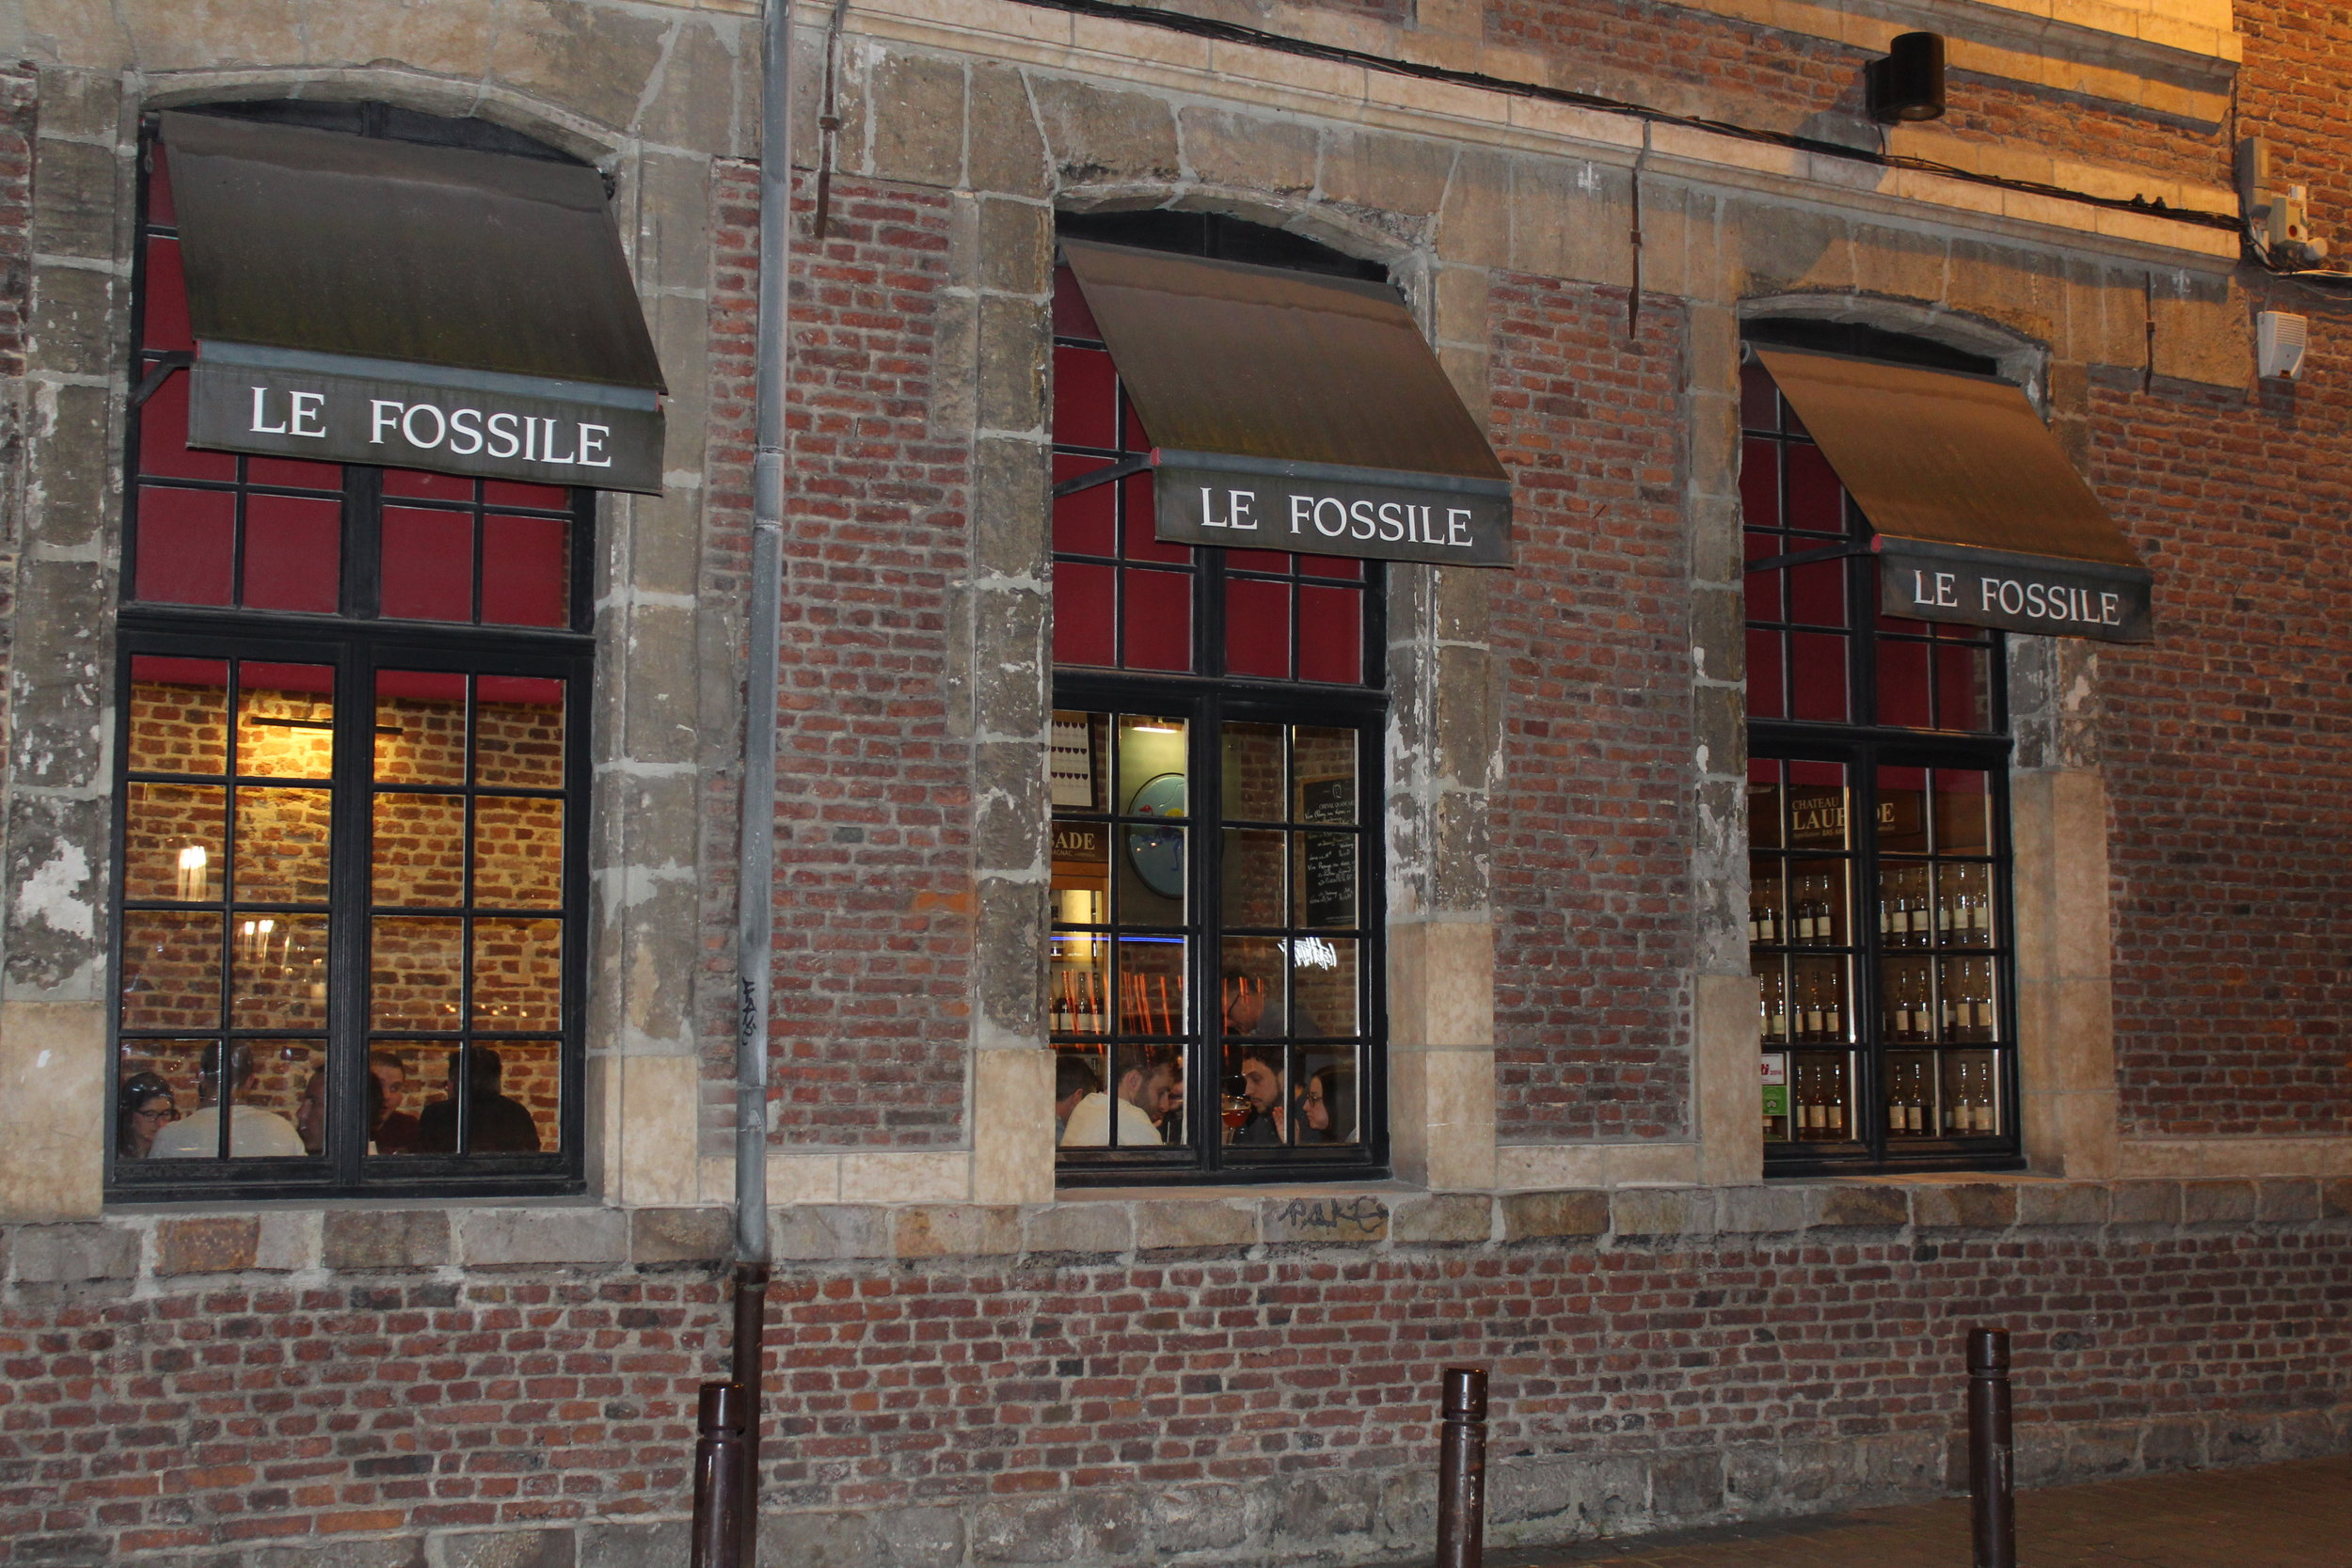 A warm ambiance greets you as you step into Le Fossile.